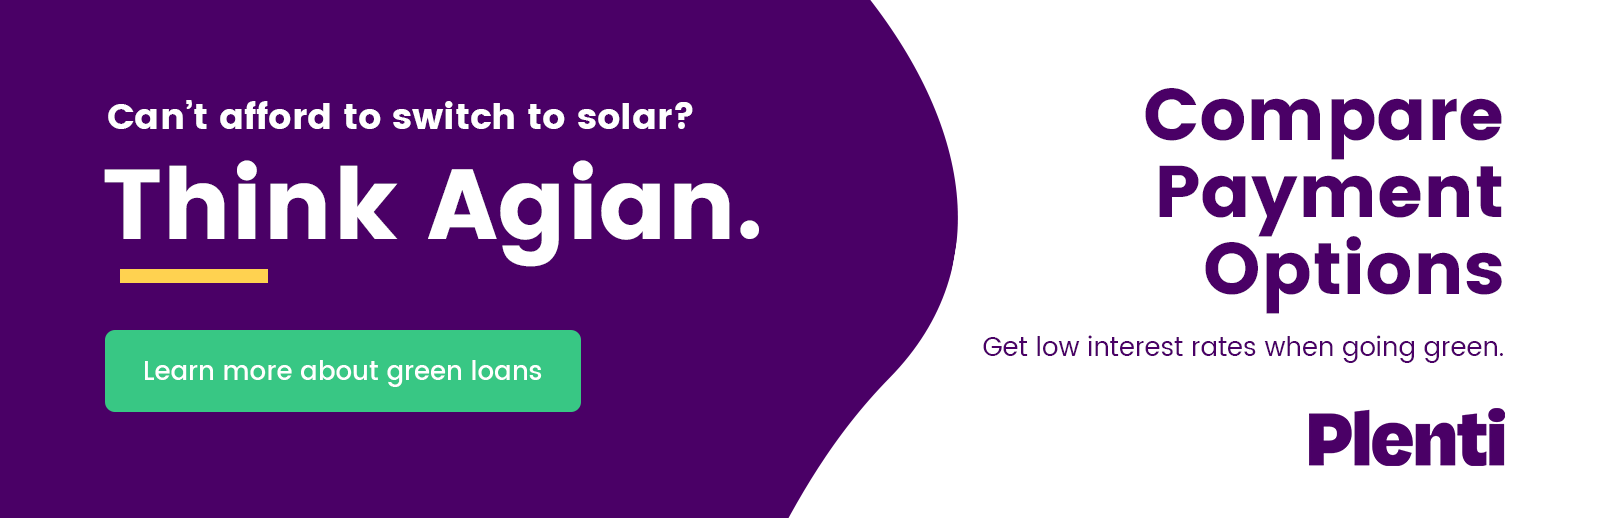 <p>Can't Afford to Switch to Solar? Think Again! Compare Payment Options. Get Low Interest Rates When Going Green!</p>